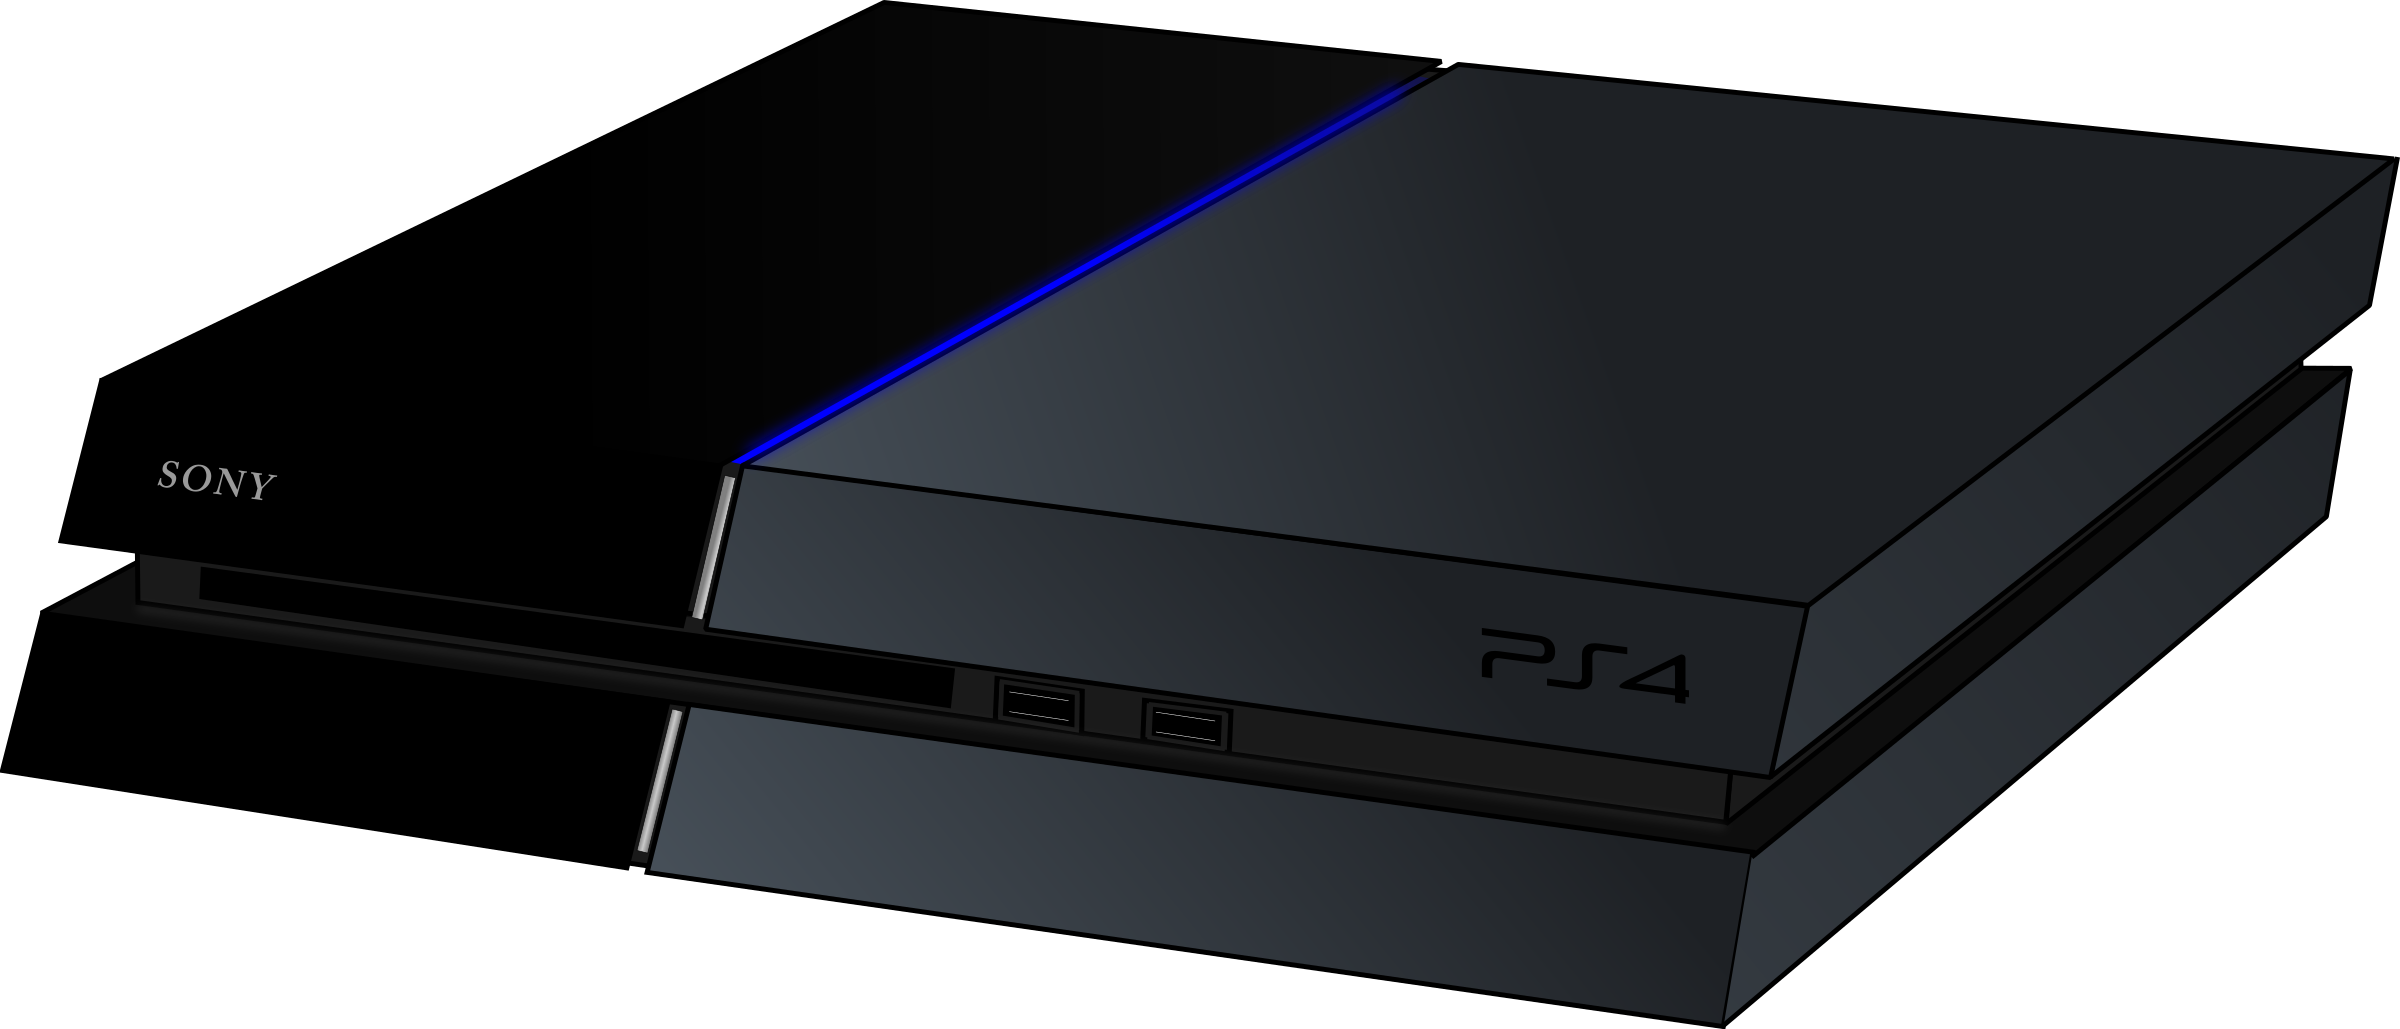 Ps big image png. Youtube clipart ps4